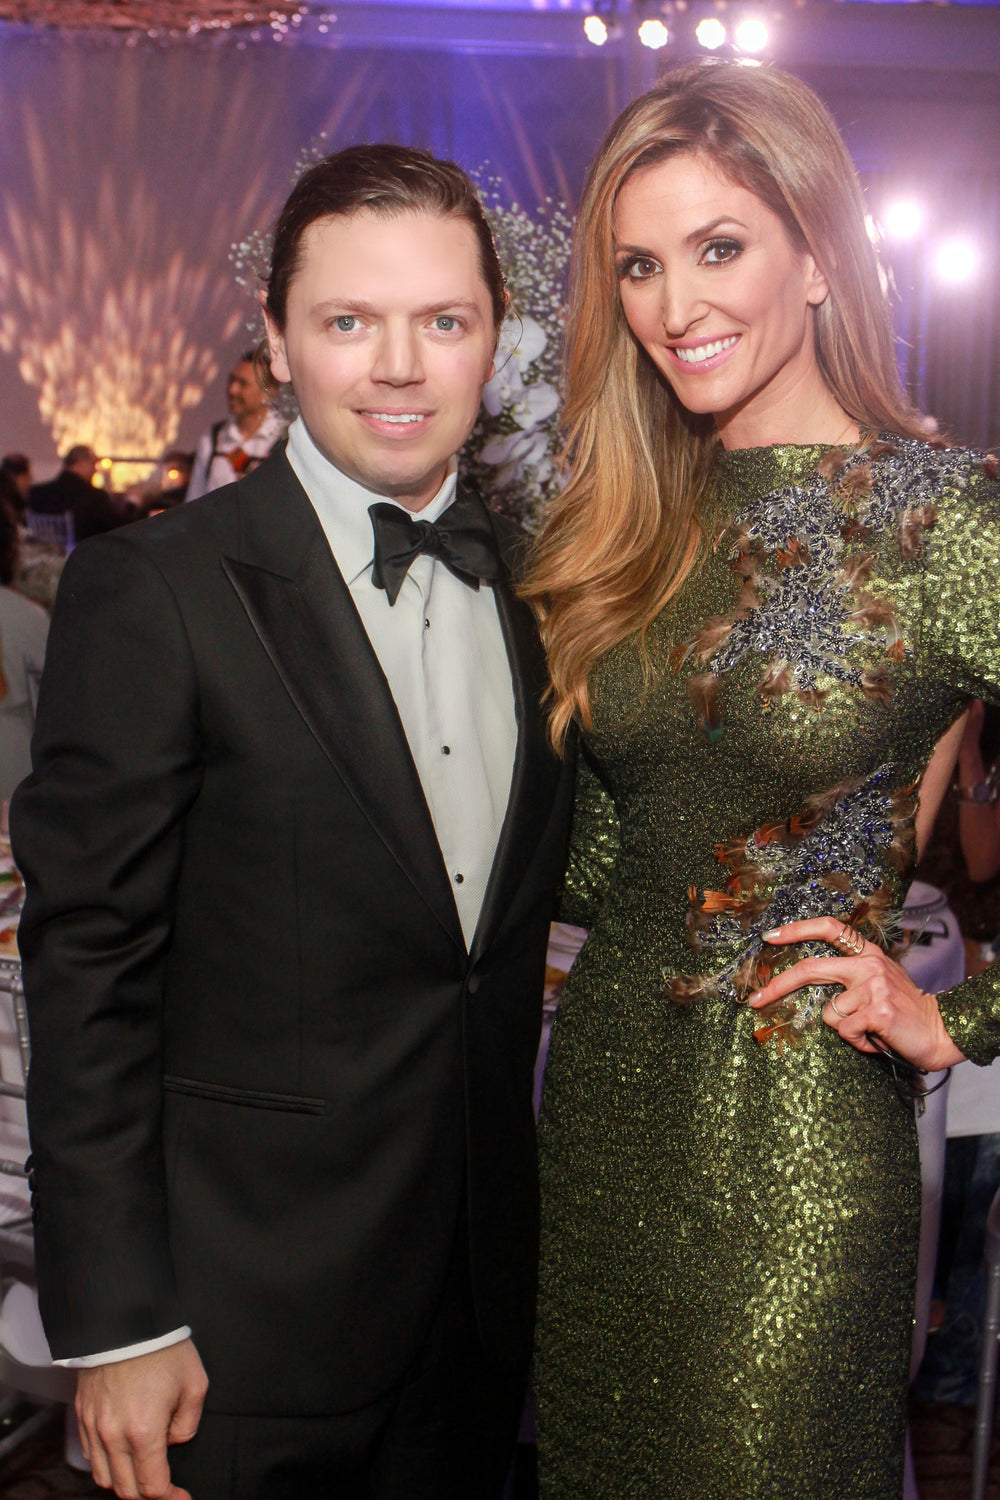 David Peck, Kelly Levesque, KNOWAutism Gala, Miles David Gown, David Peck custom gown